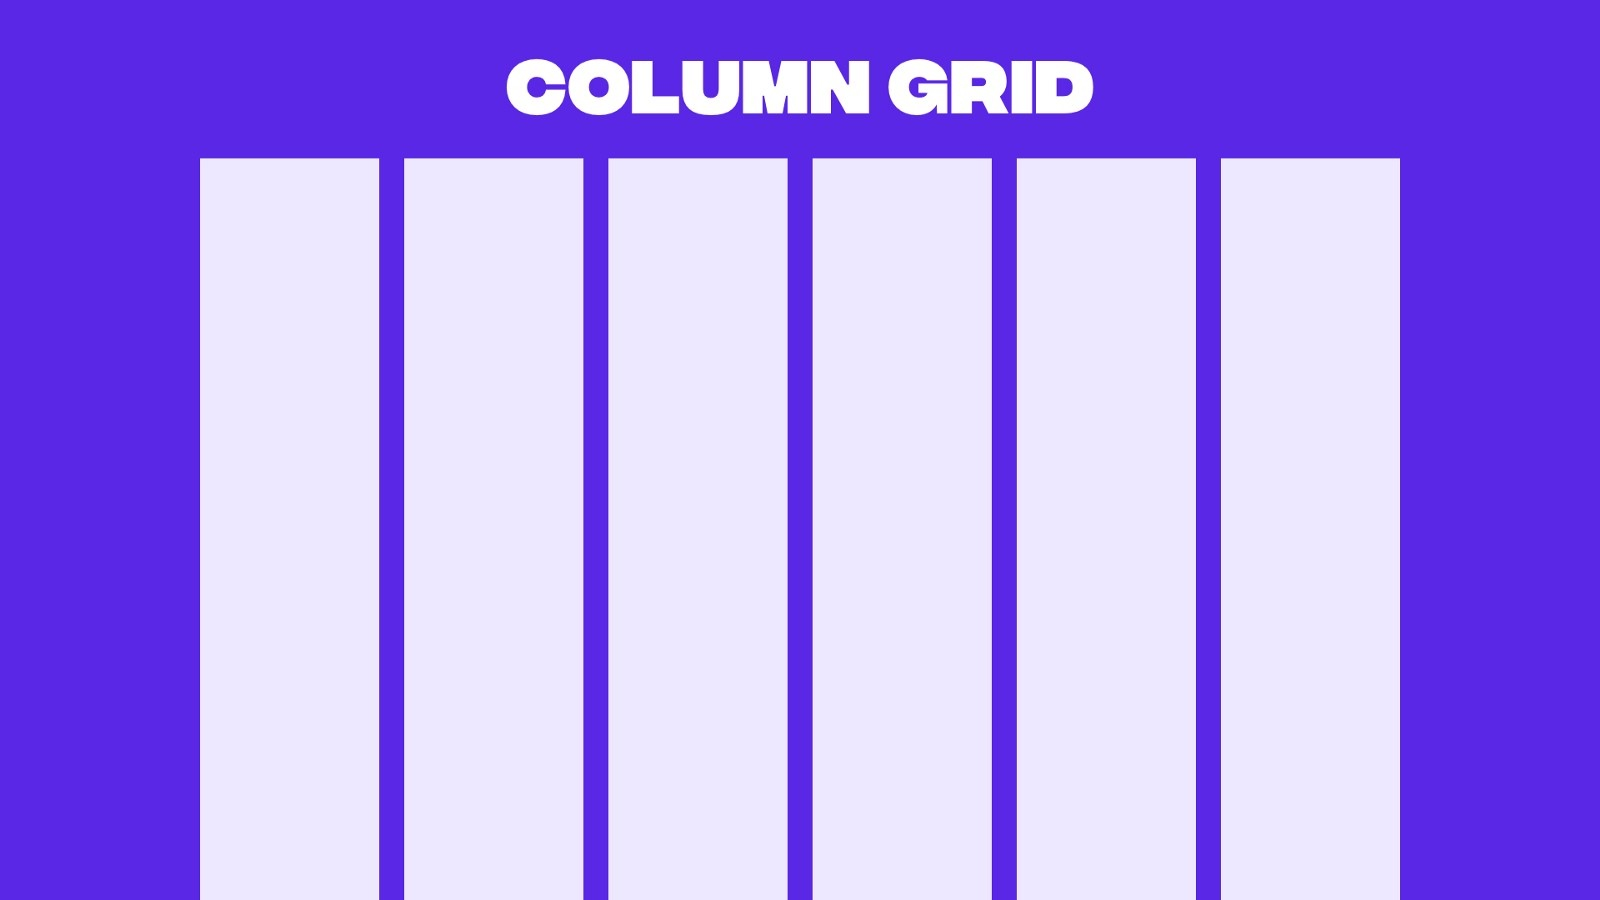 Example of a column grid